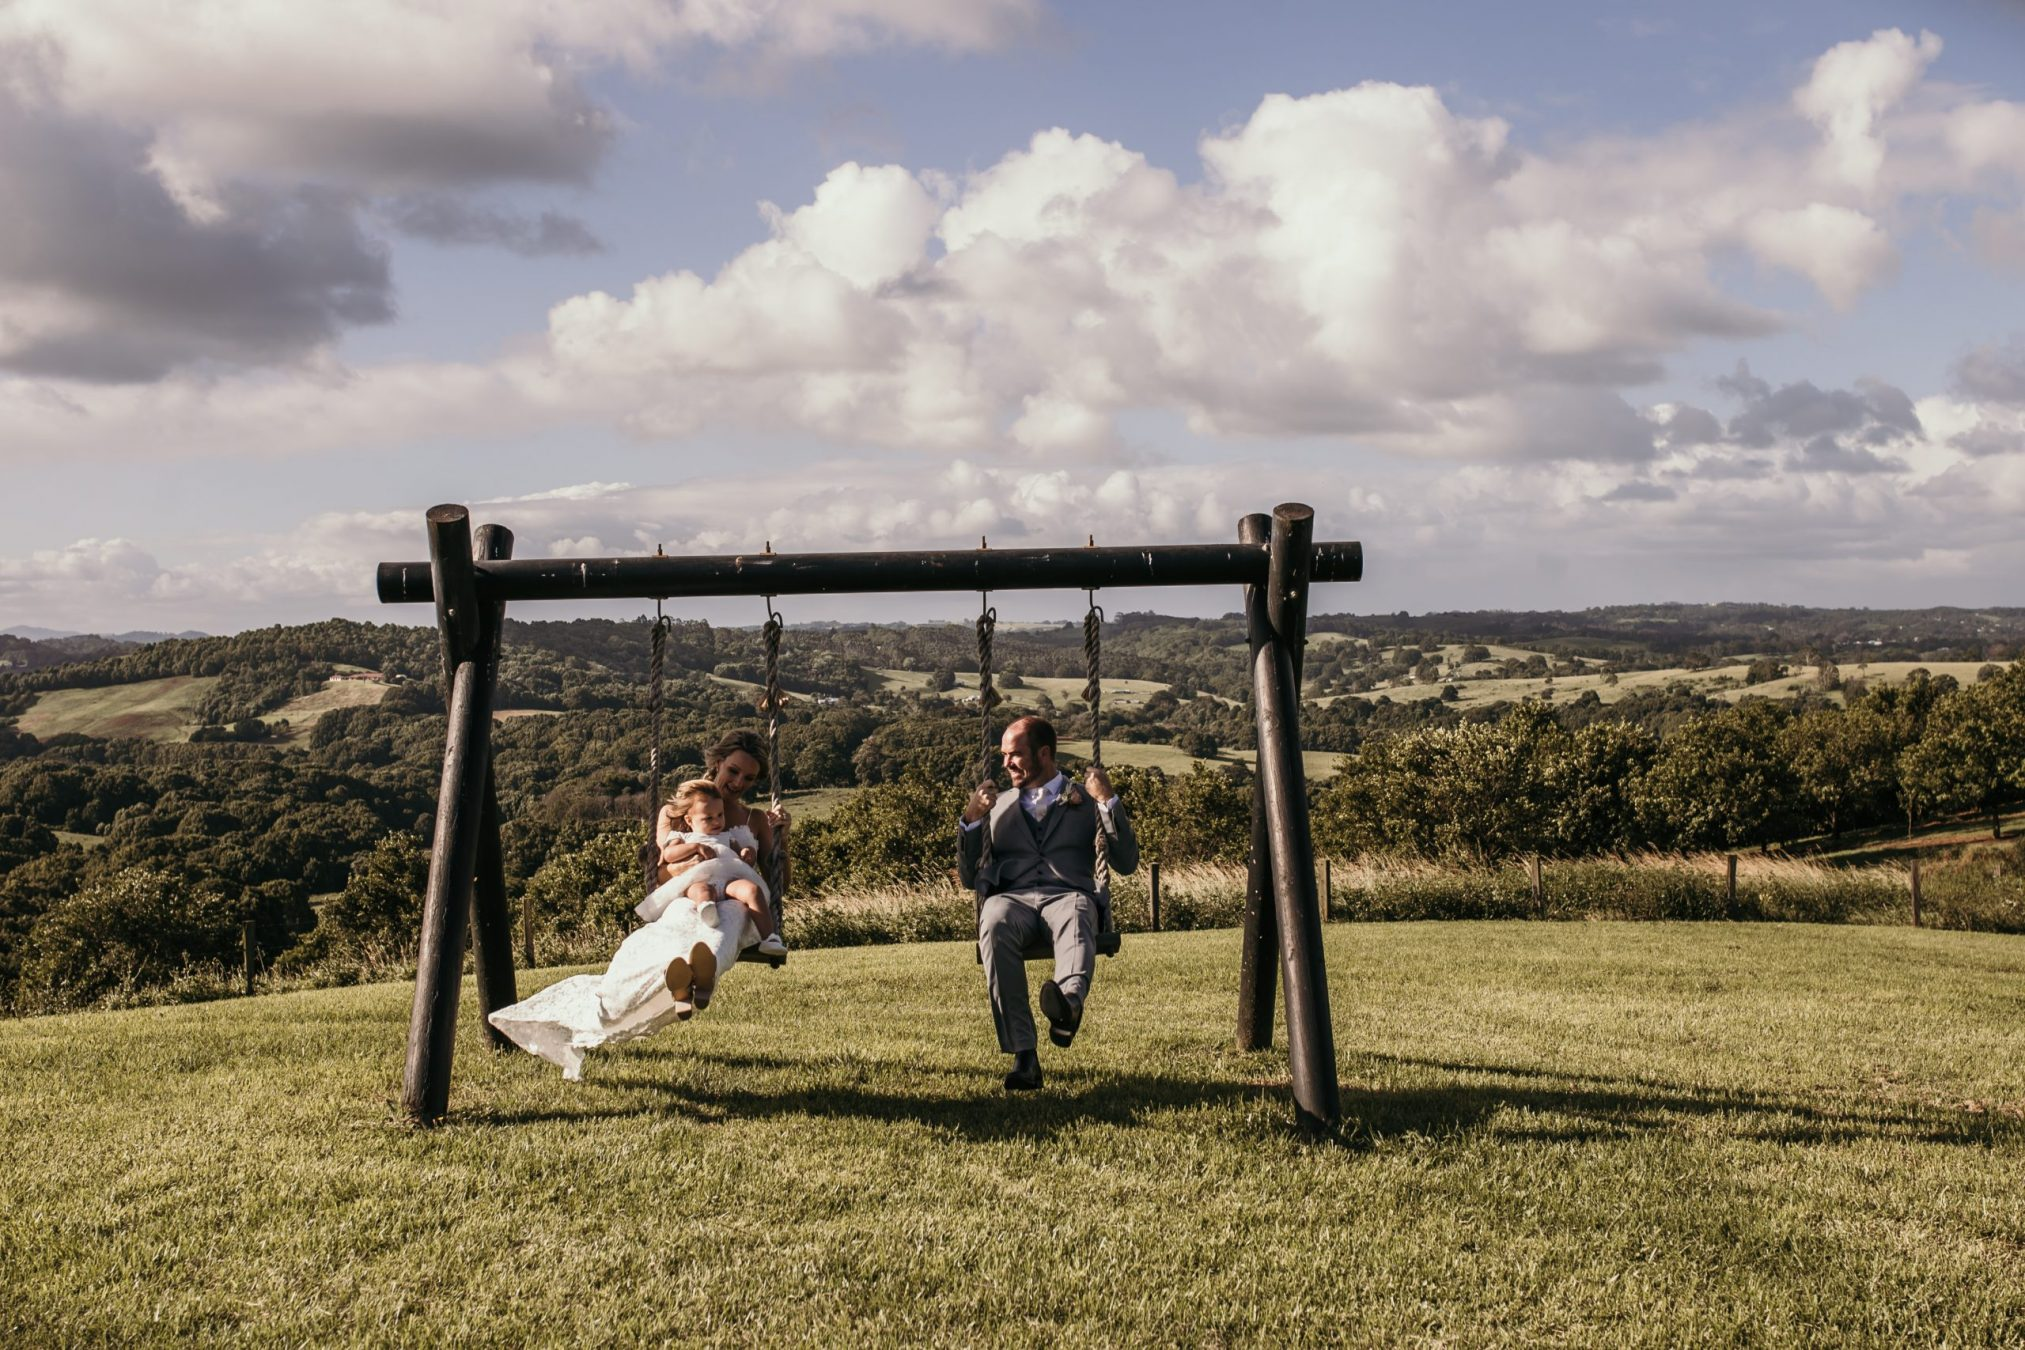 Bride and groom on swing with child on brides lap. View to valley in background.